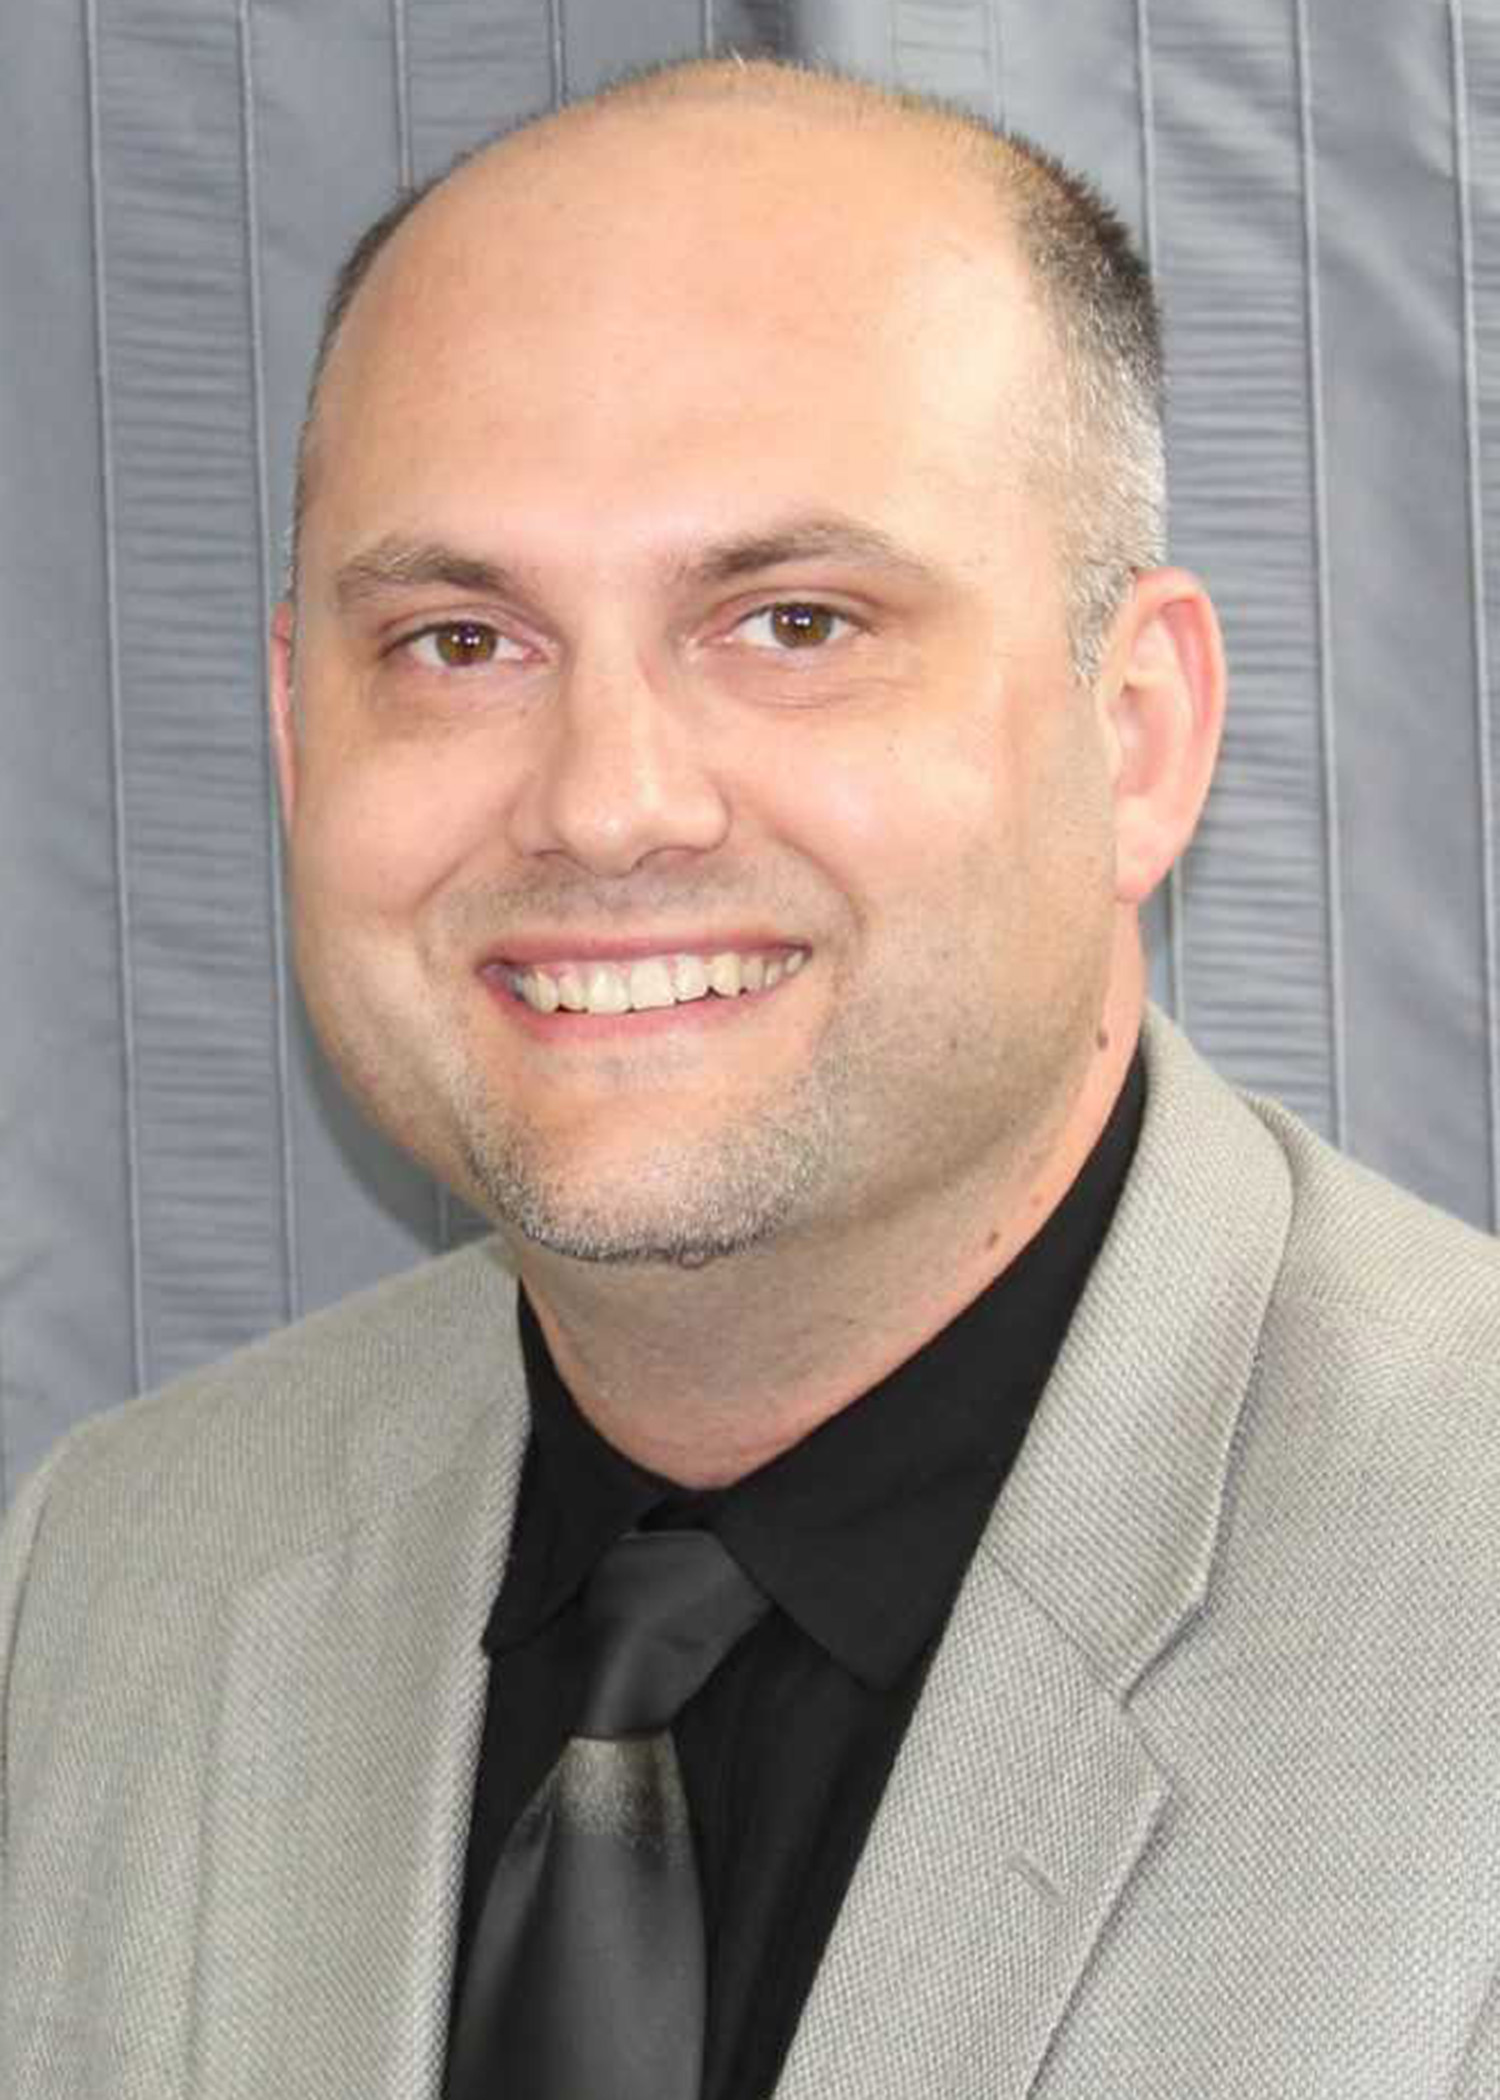 SWU has named Dan Moore new Chief Technology Officer.